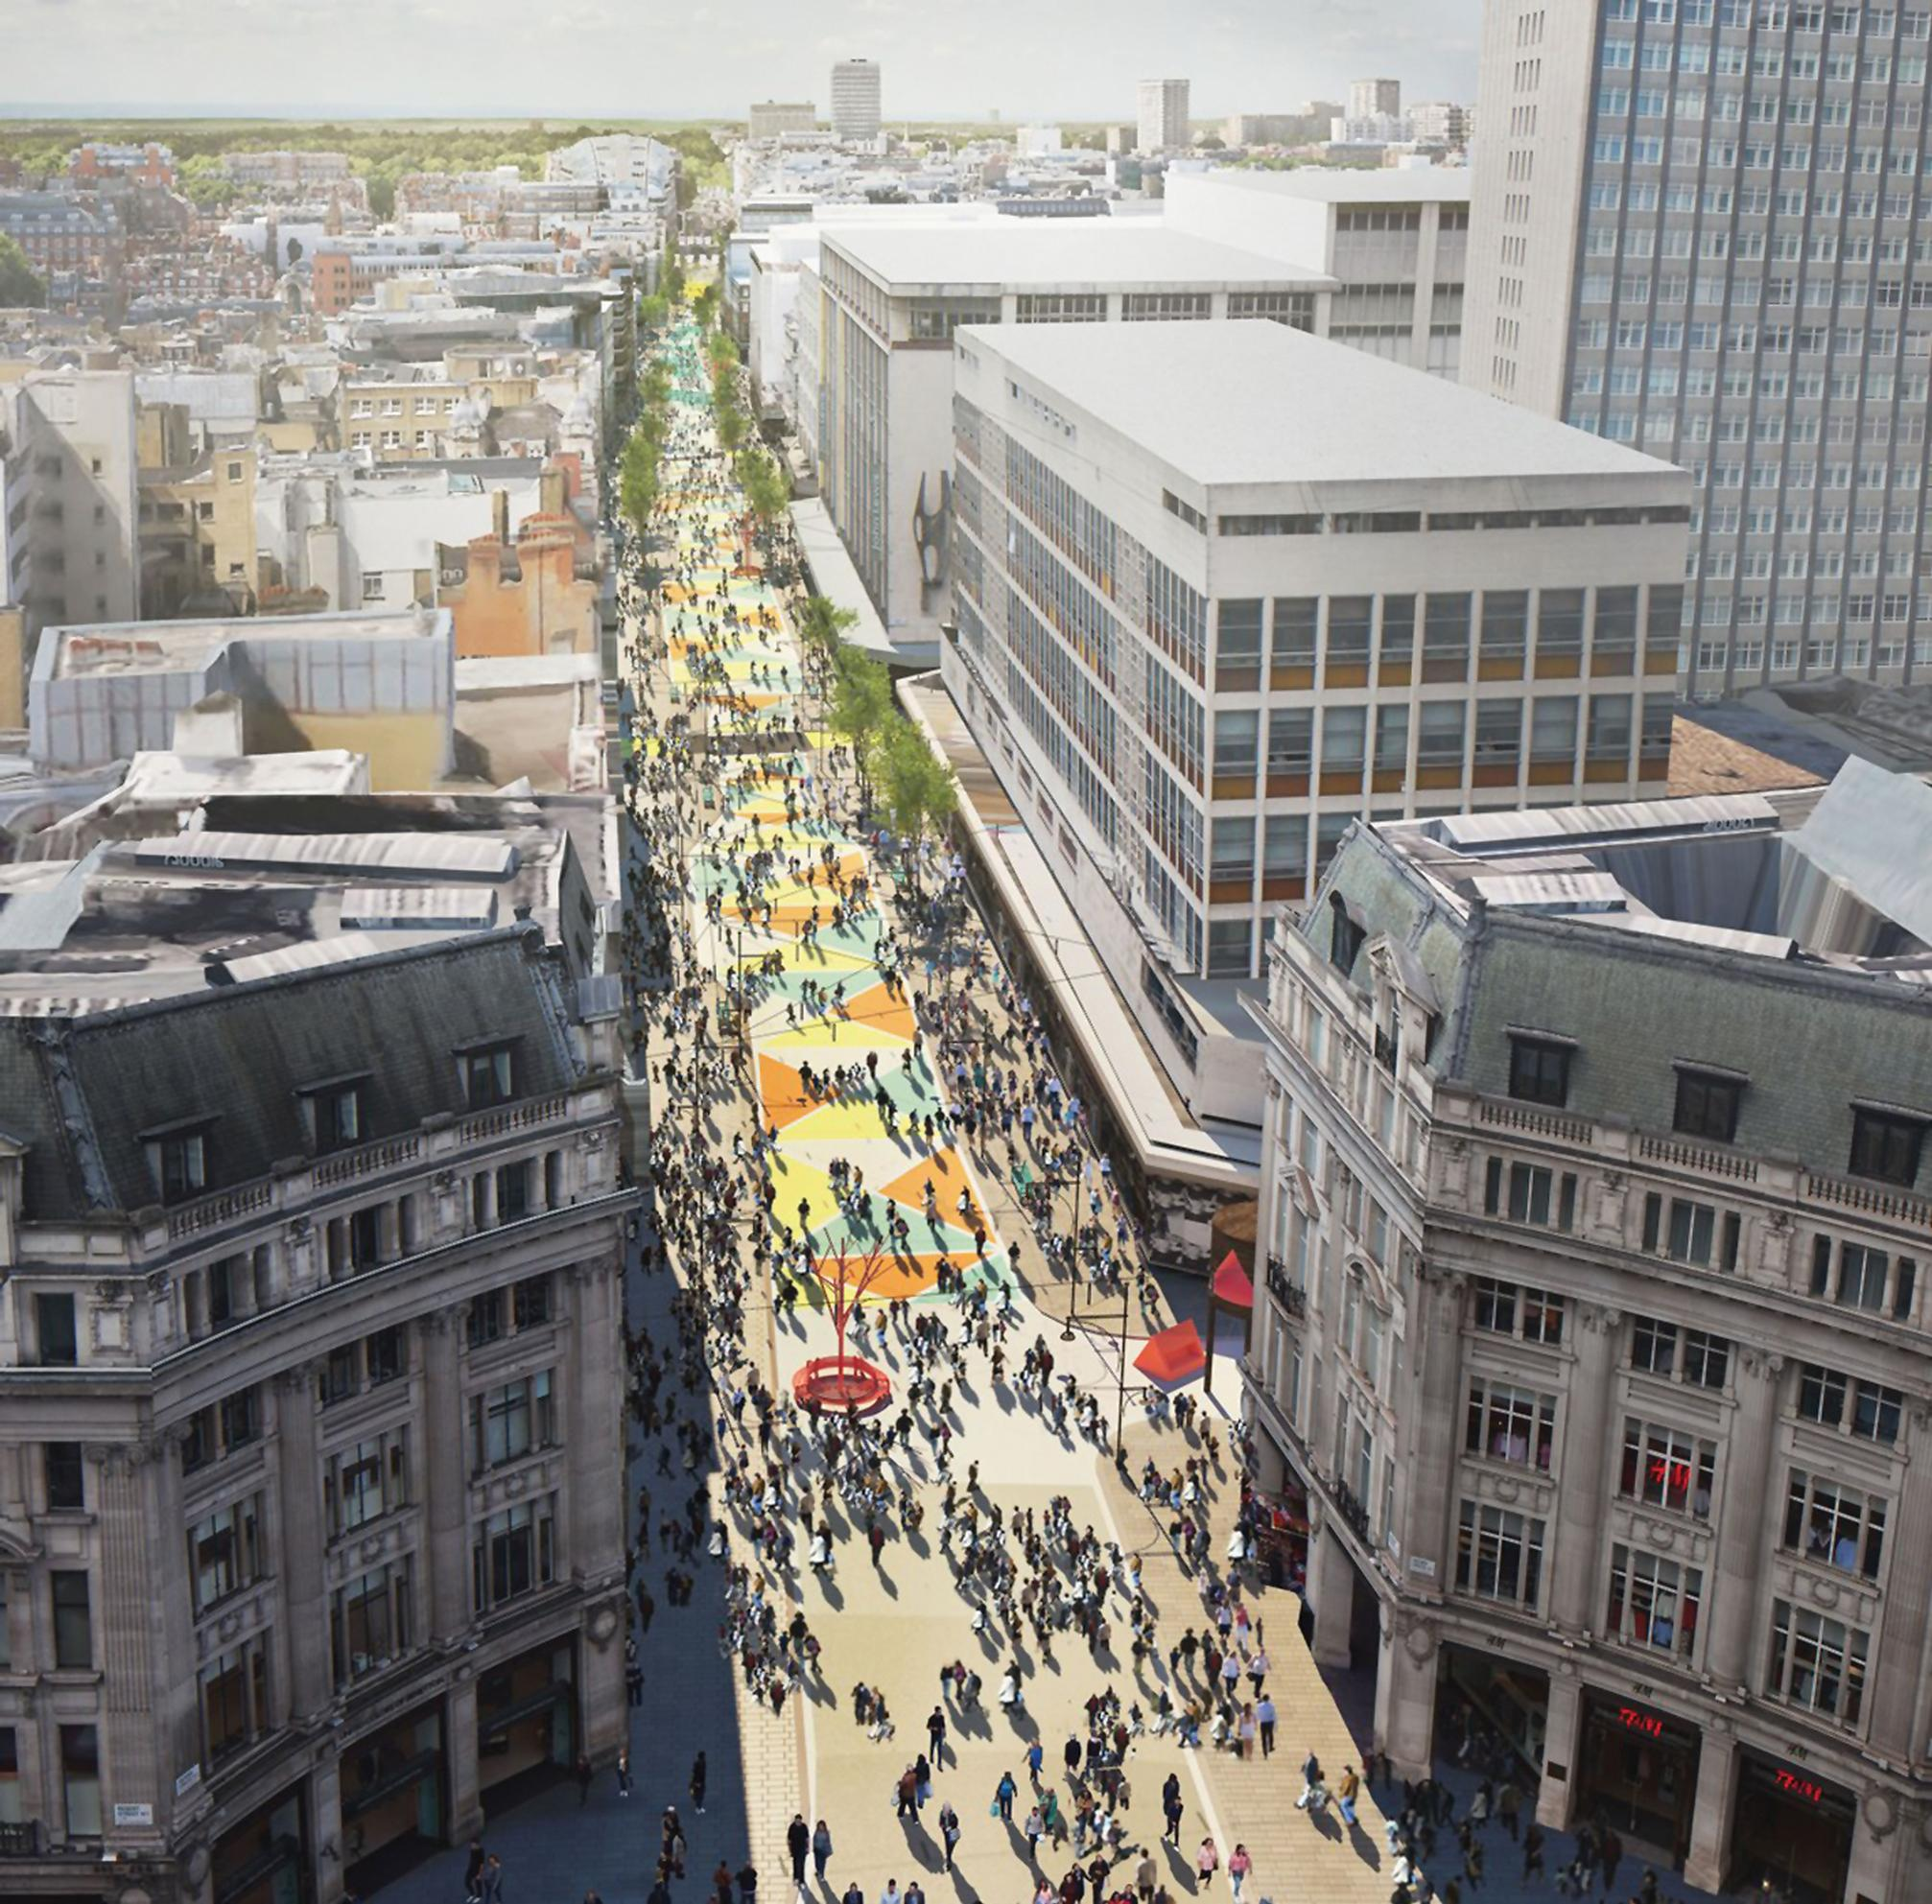 Oxford Street: mayor's vision blocked